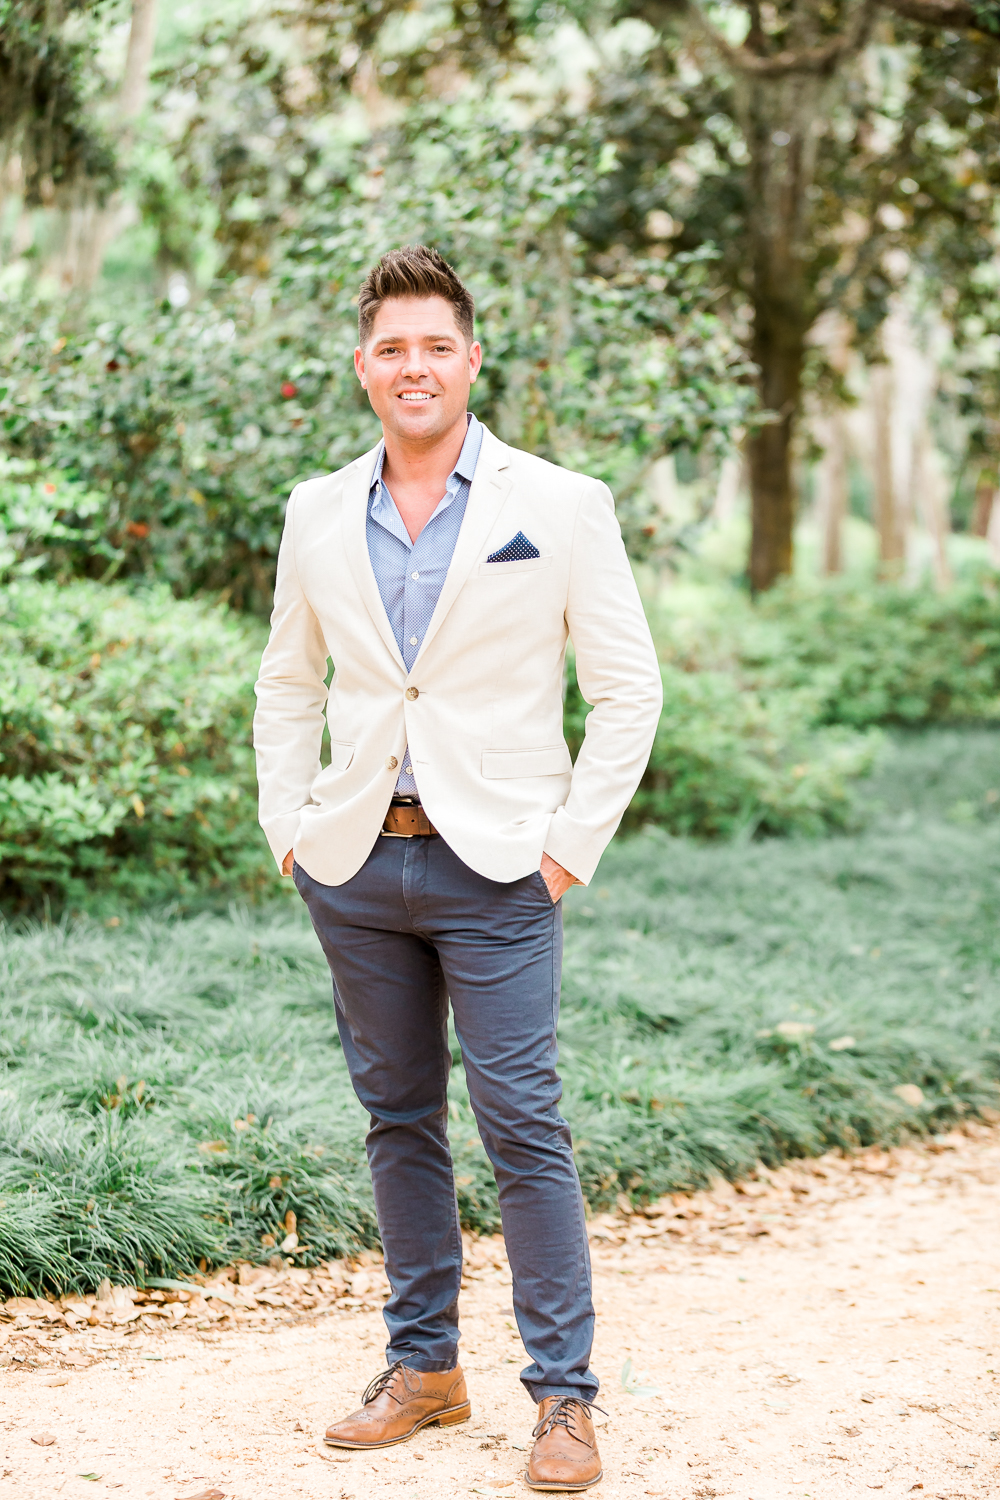 Styling guide for men for engagement session